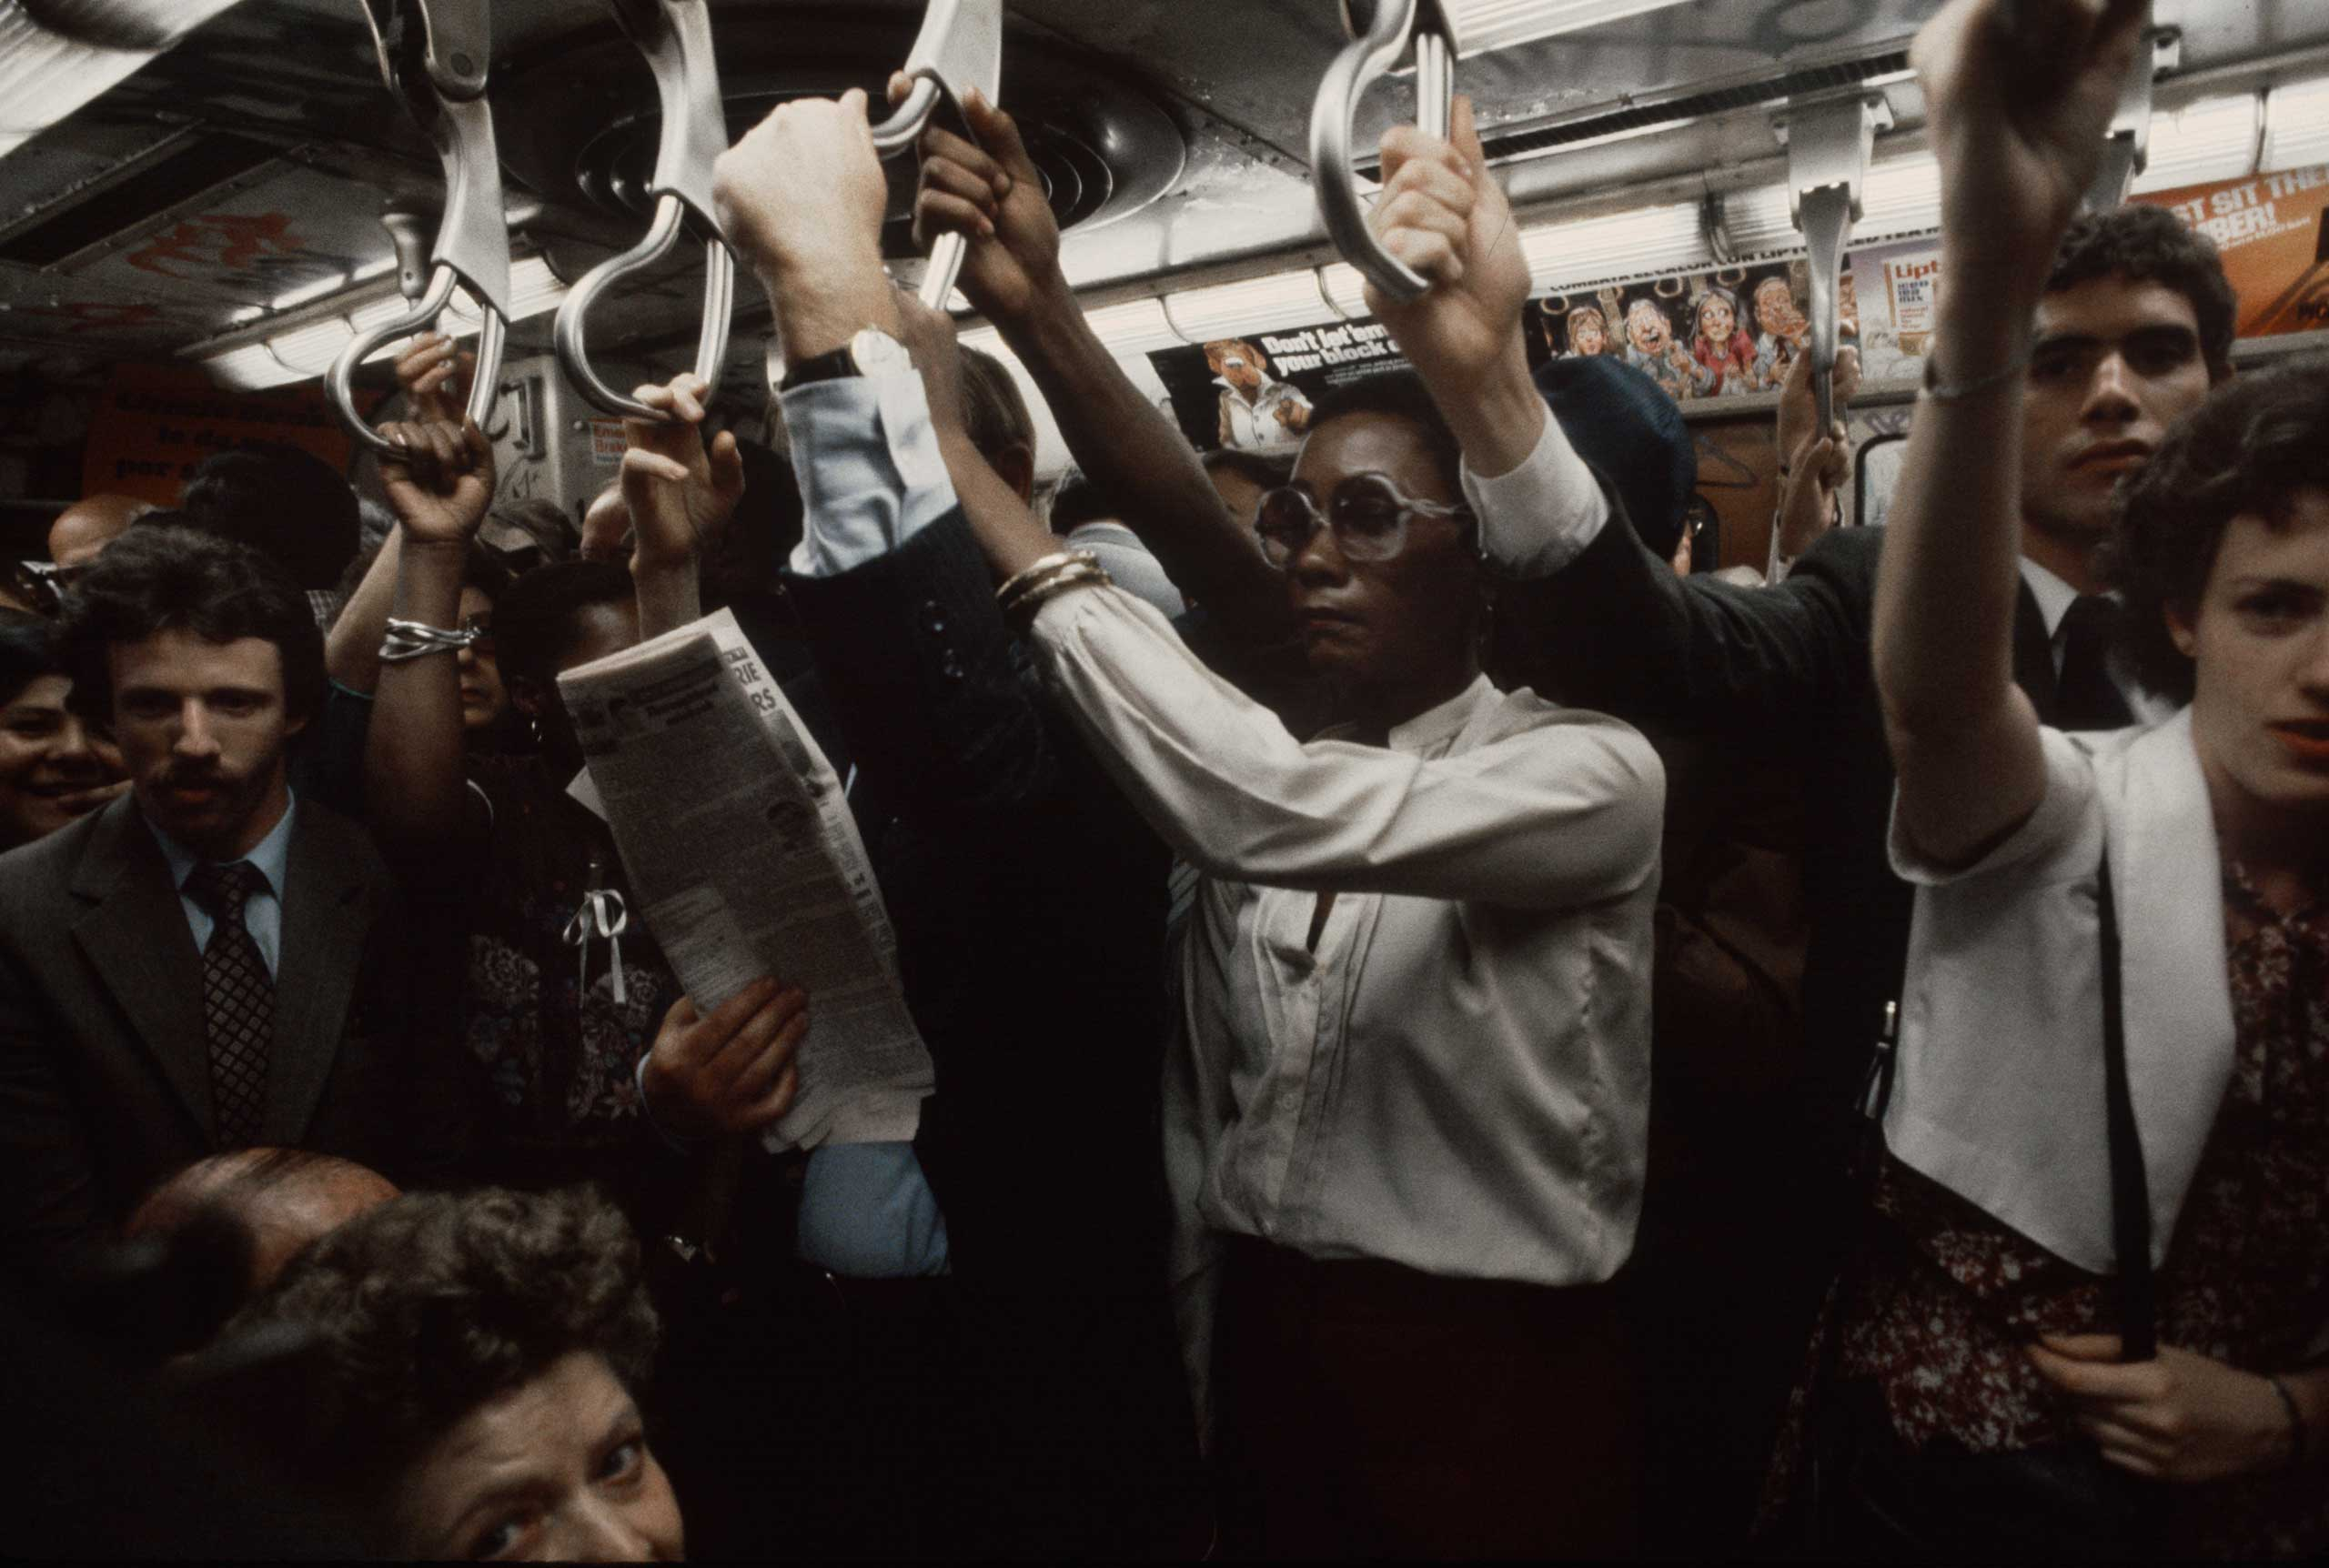 A packed subway car during rush hour, 1981.